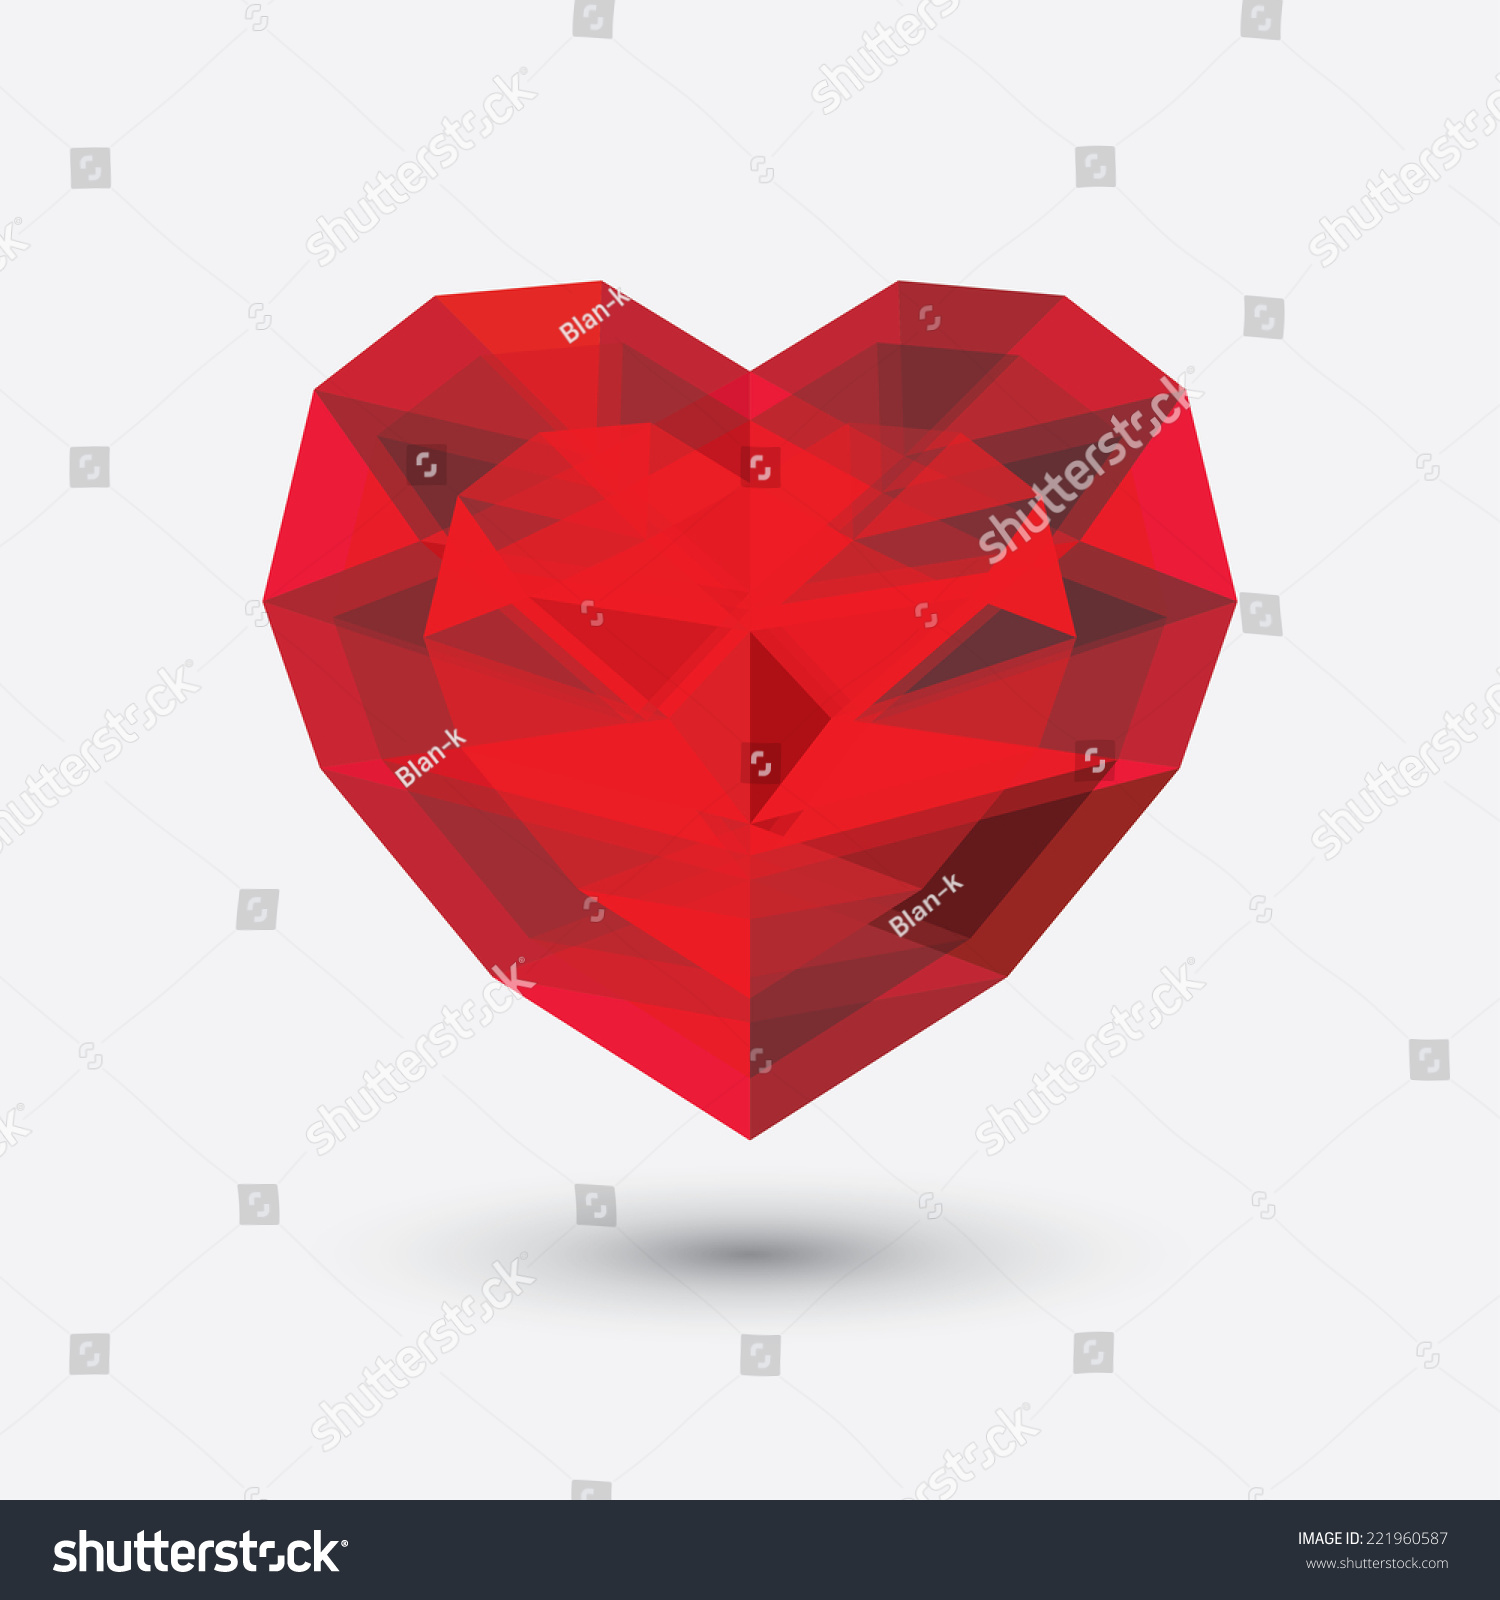 Vector heart geometric